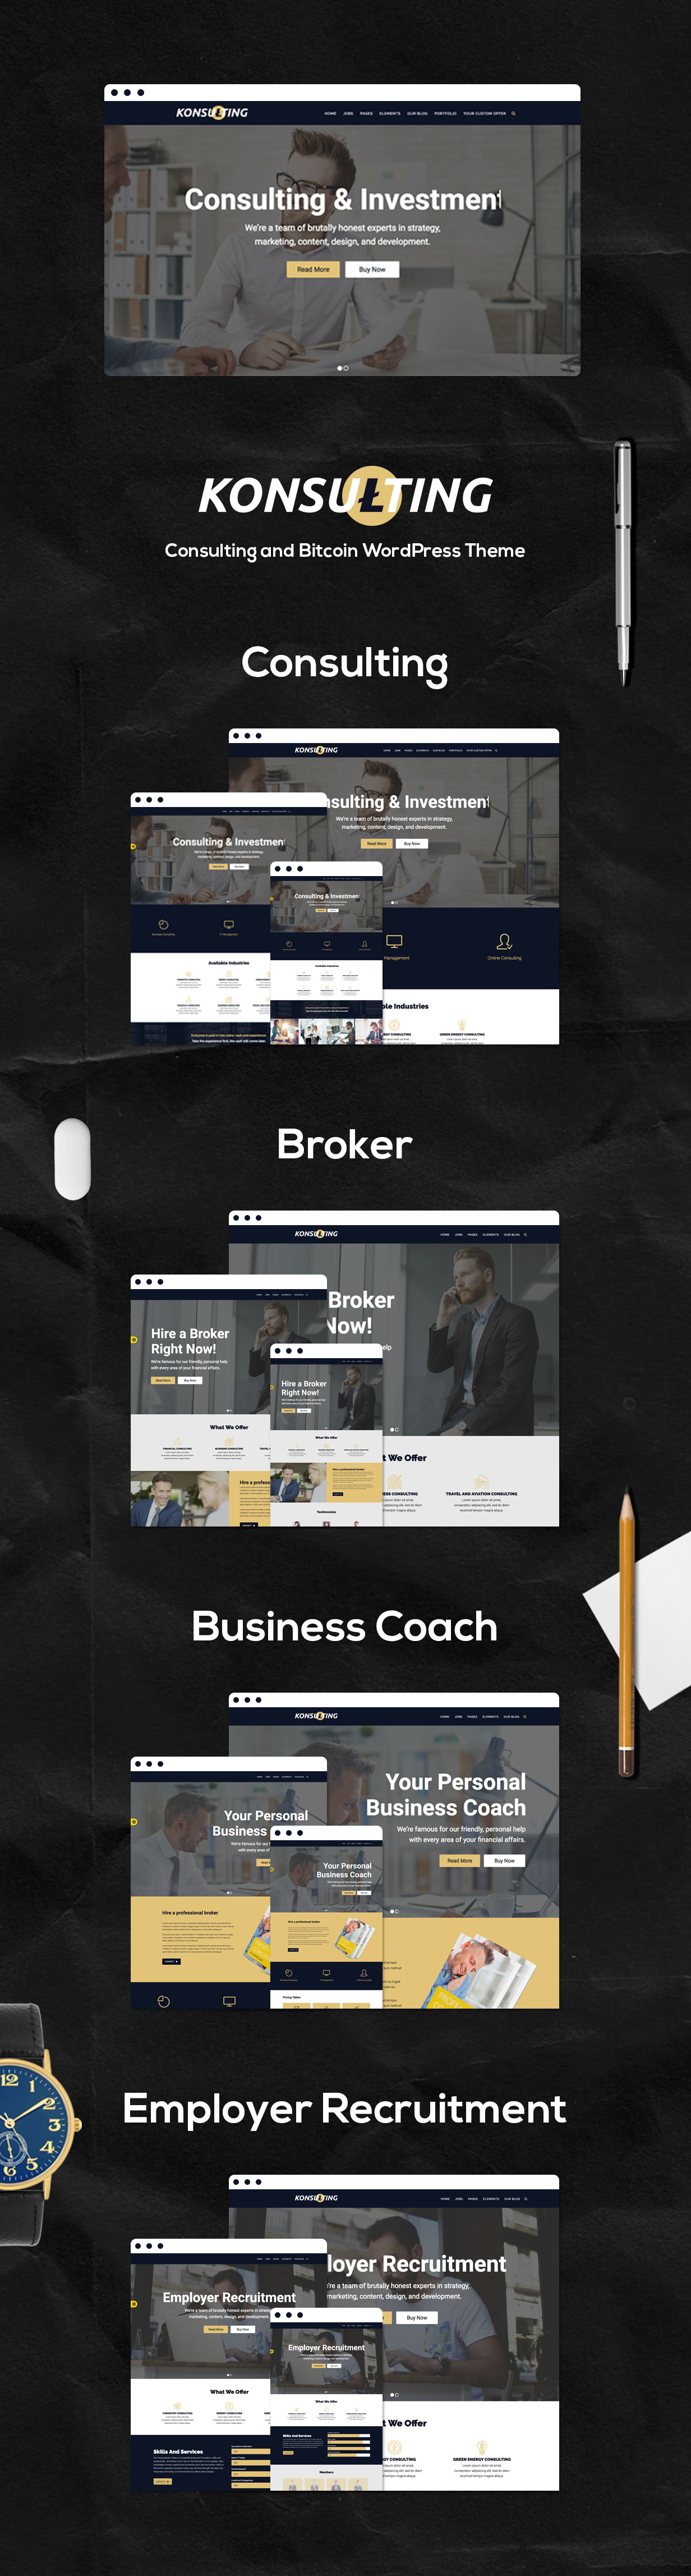 Konsulting - Consulting & Bitcoin WordPress Theme - 3